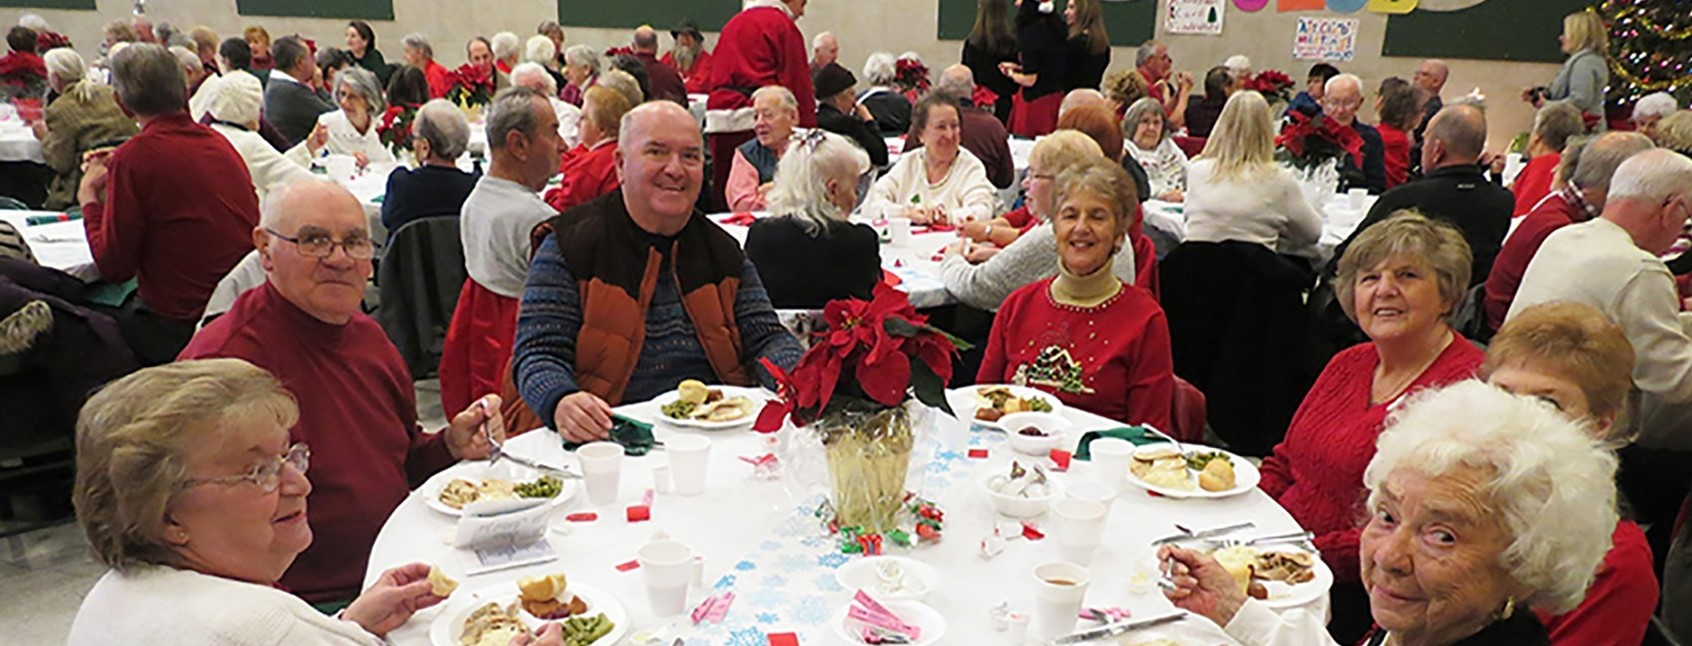 Deer Lakes to host senior citizen's holiday luncheon, Dec. 13